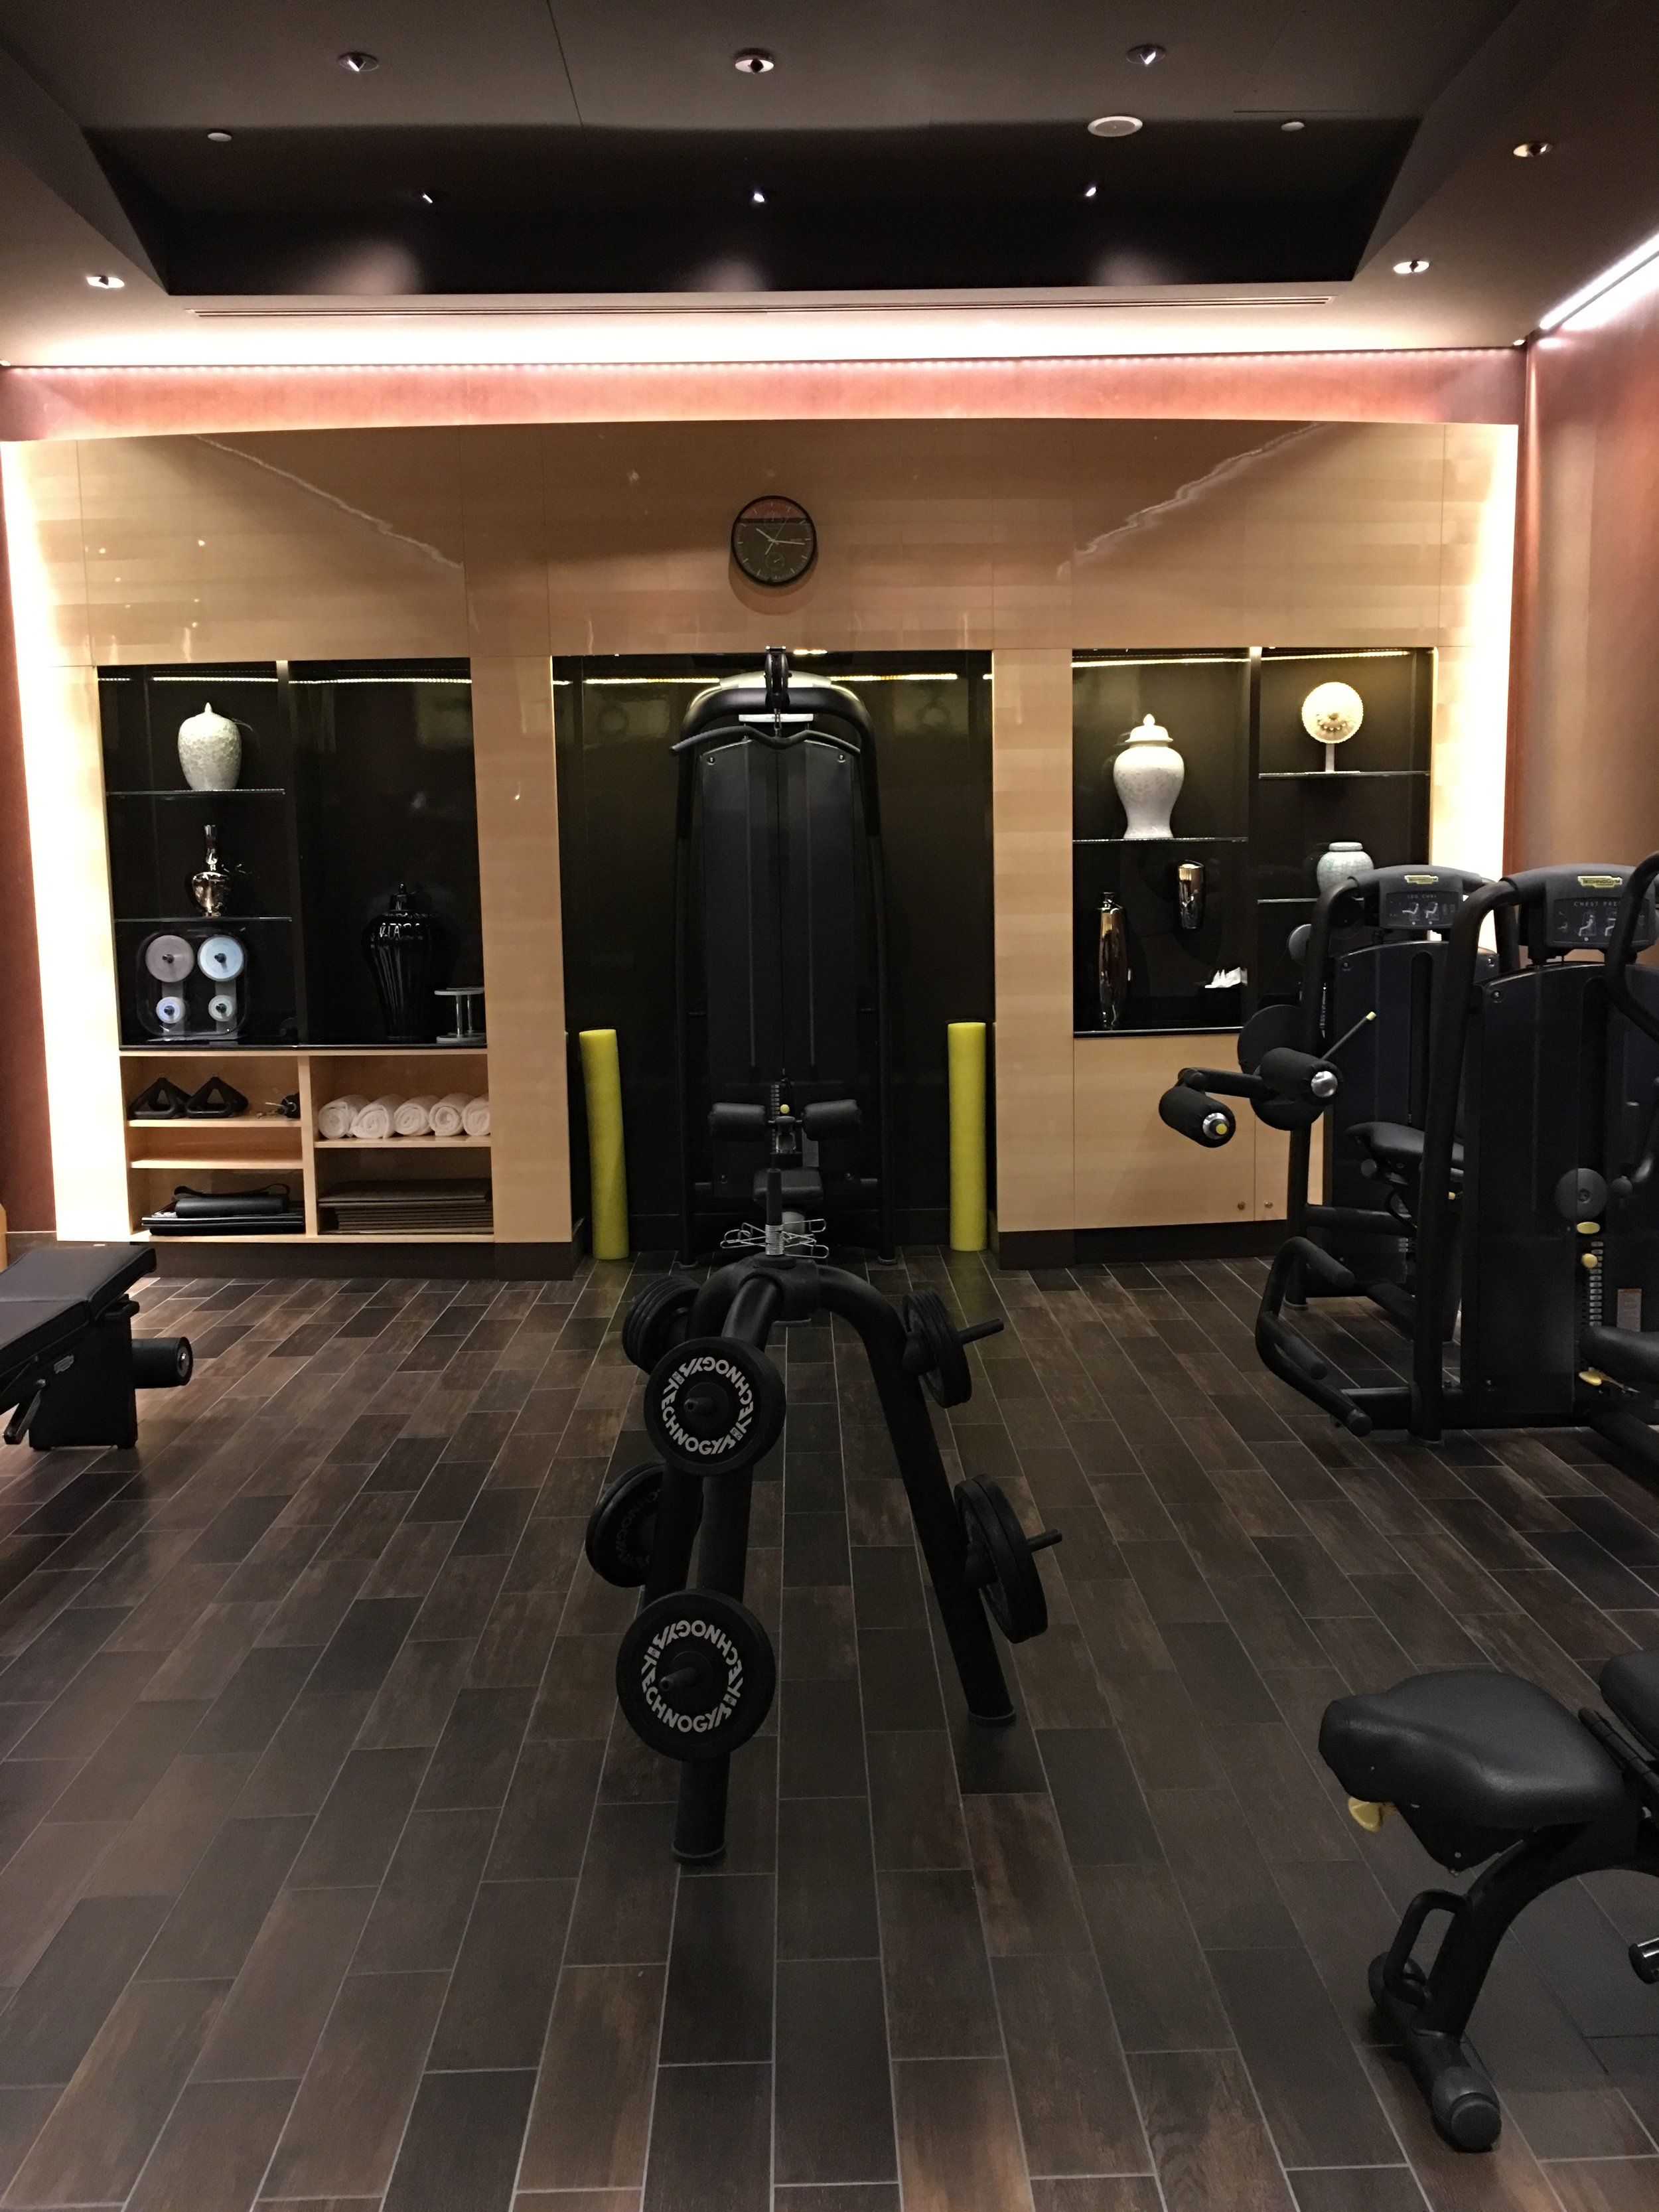 The gym at Prince de Galles, hotel review to come!